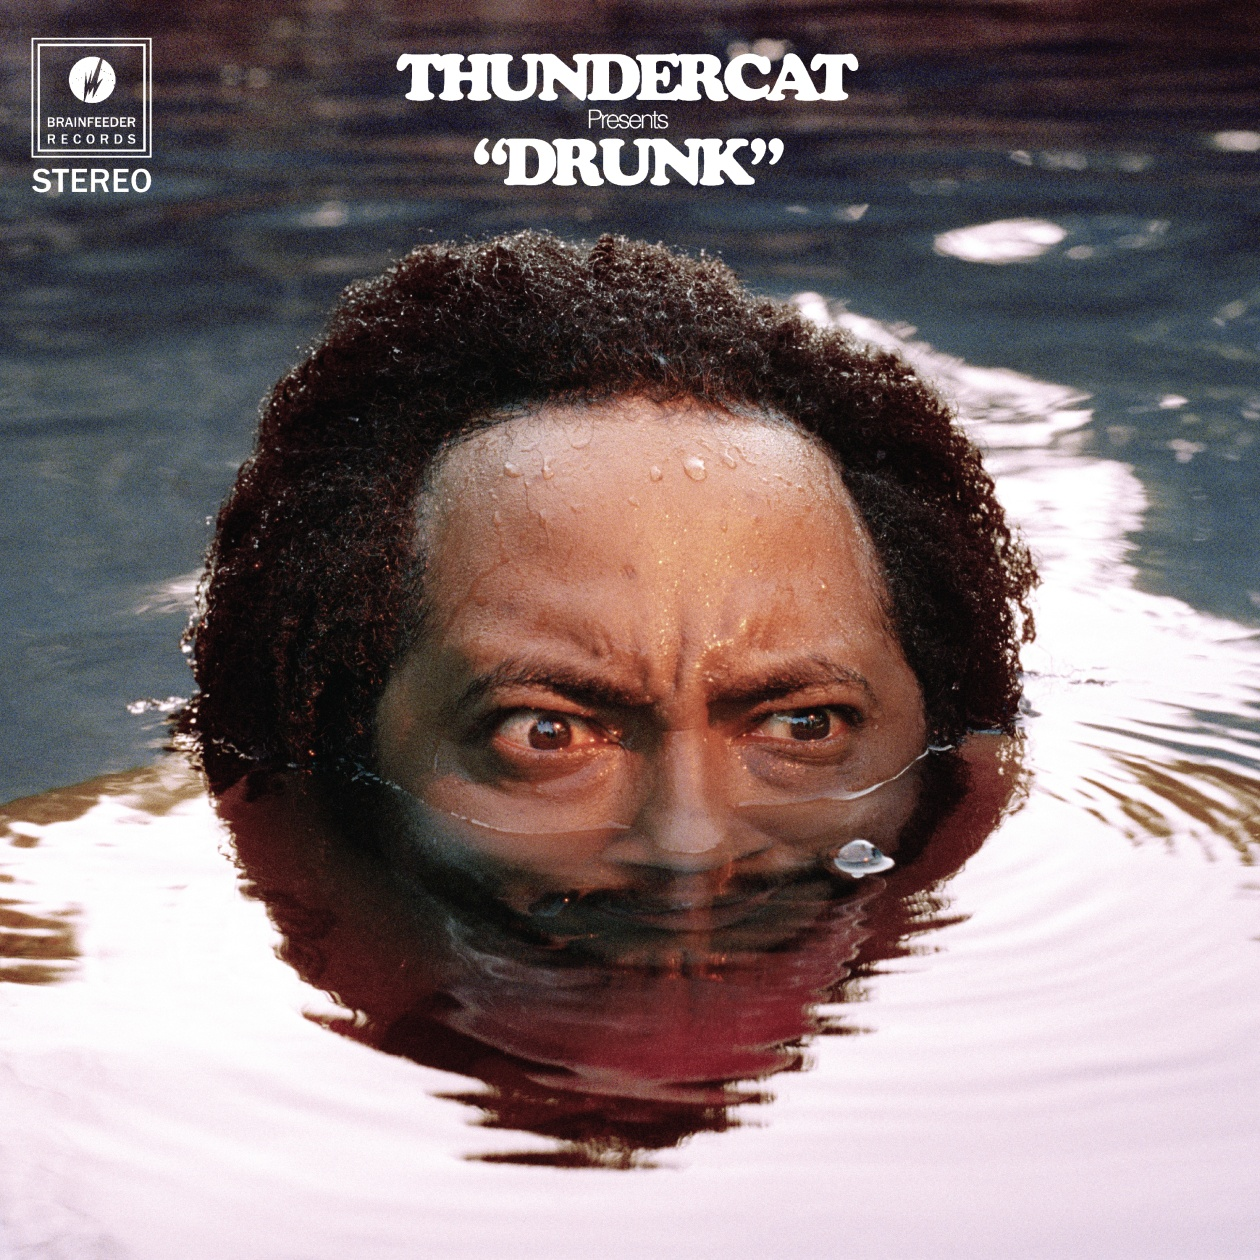 thundercat-drunk-album-show-you-the-way-michael-mcdonald-kenny-loggins-single